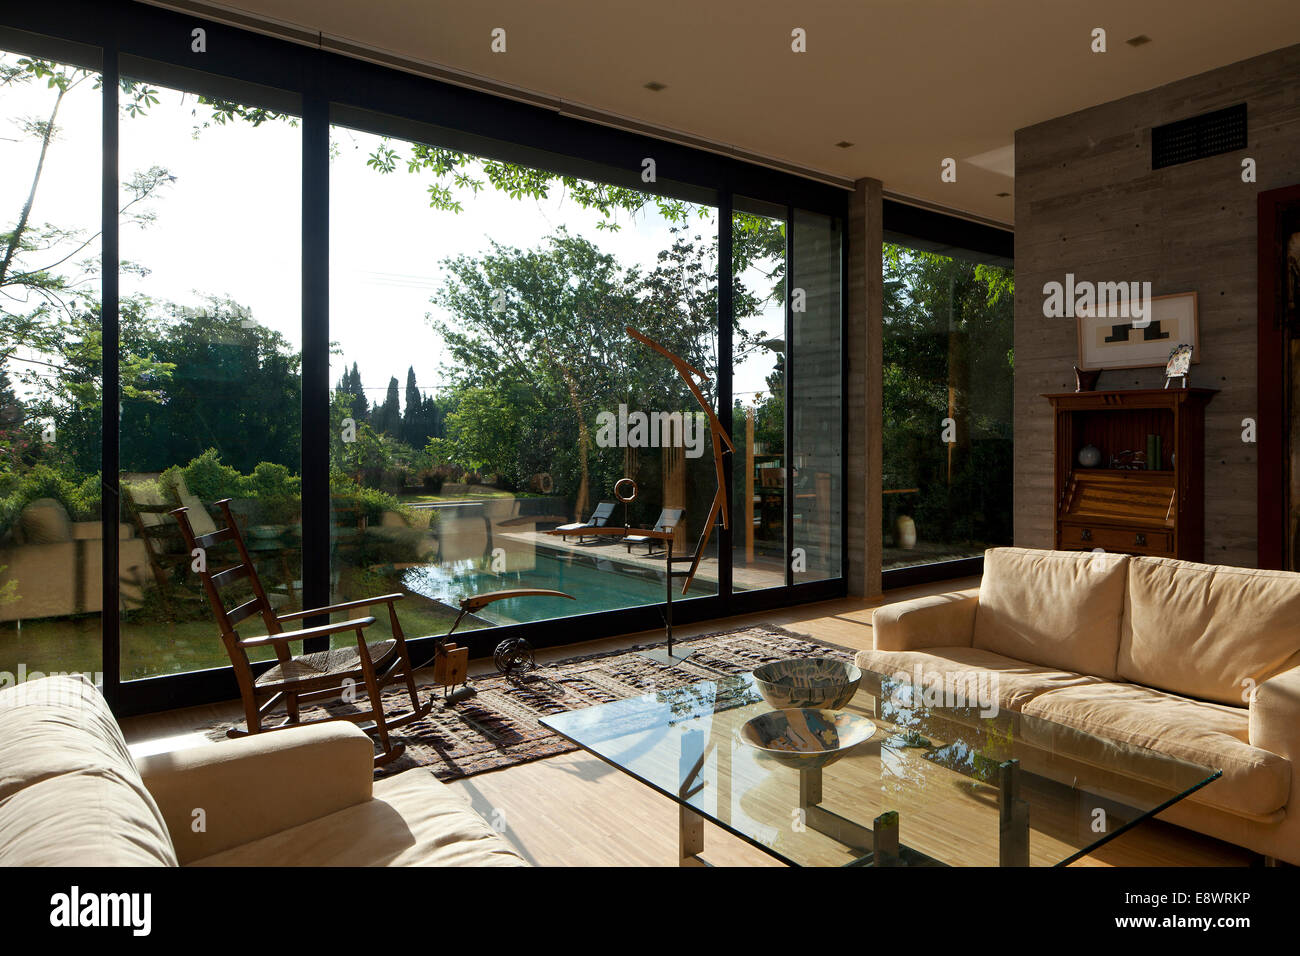 Cream Sofas And Glass Topped Coffee Table With Full Length Windows In Living Room Of Gotesman House Israel Middle East